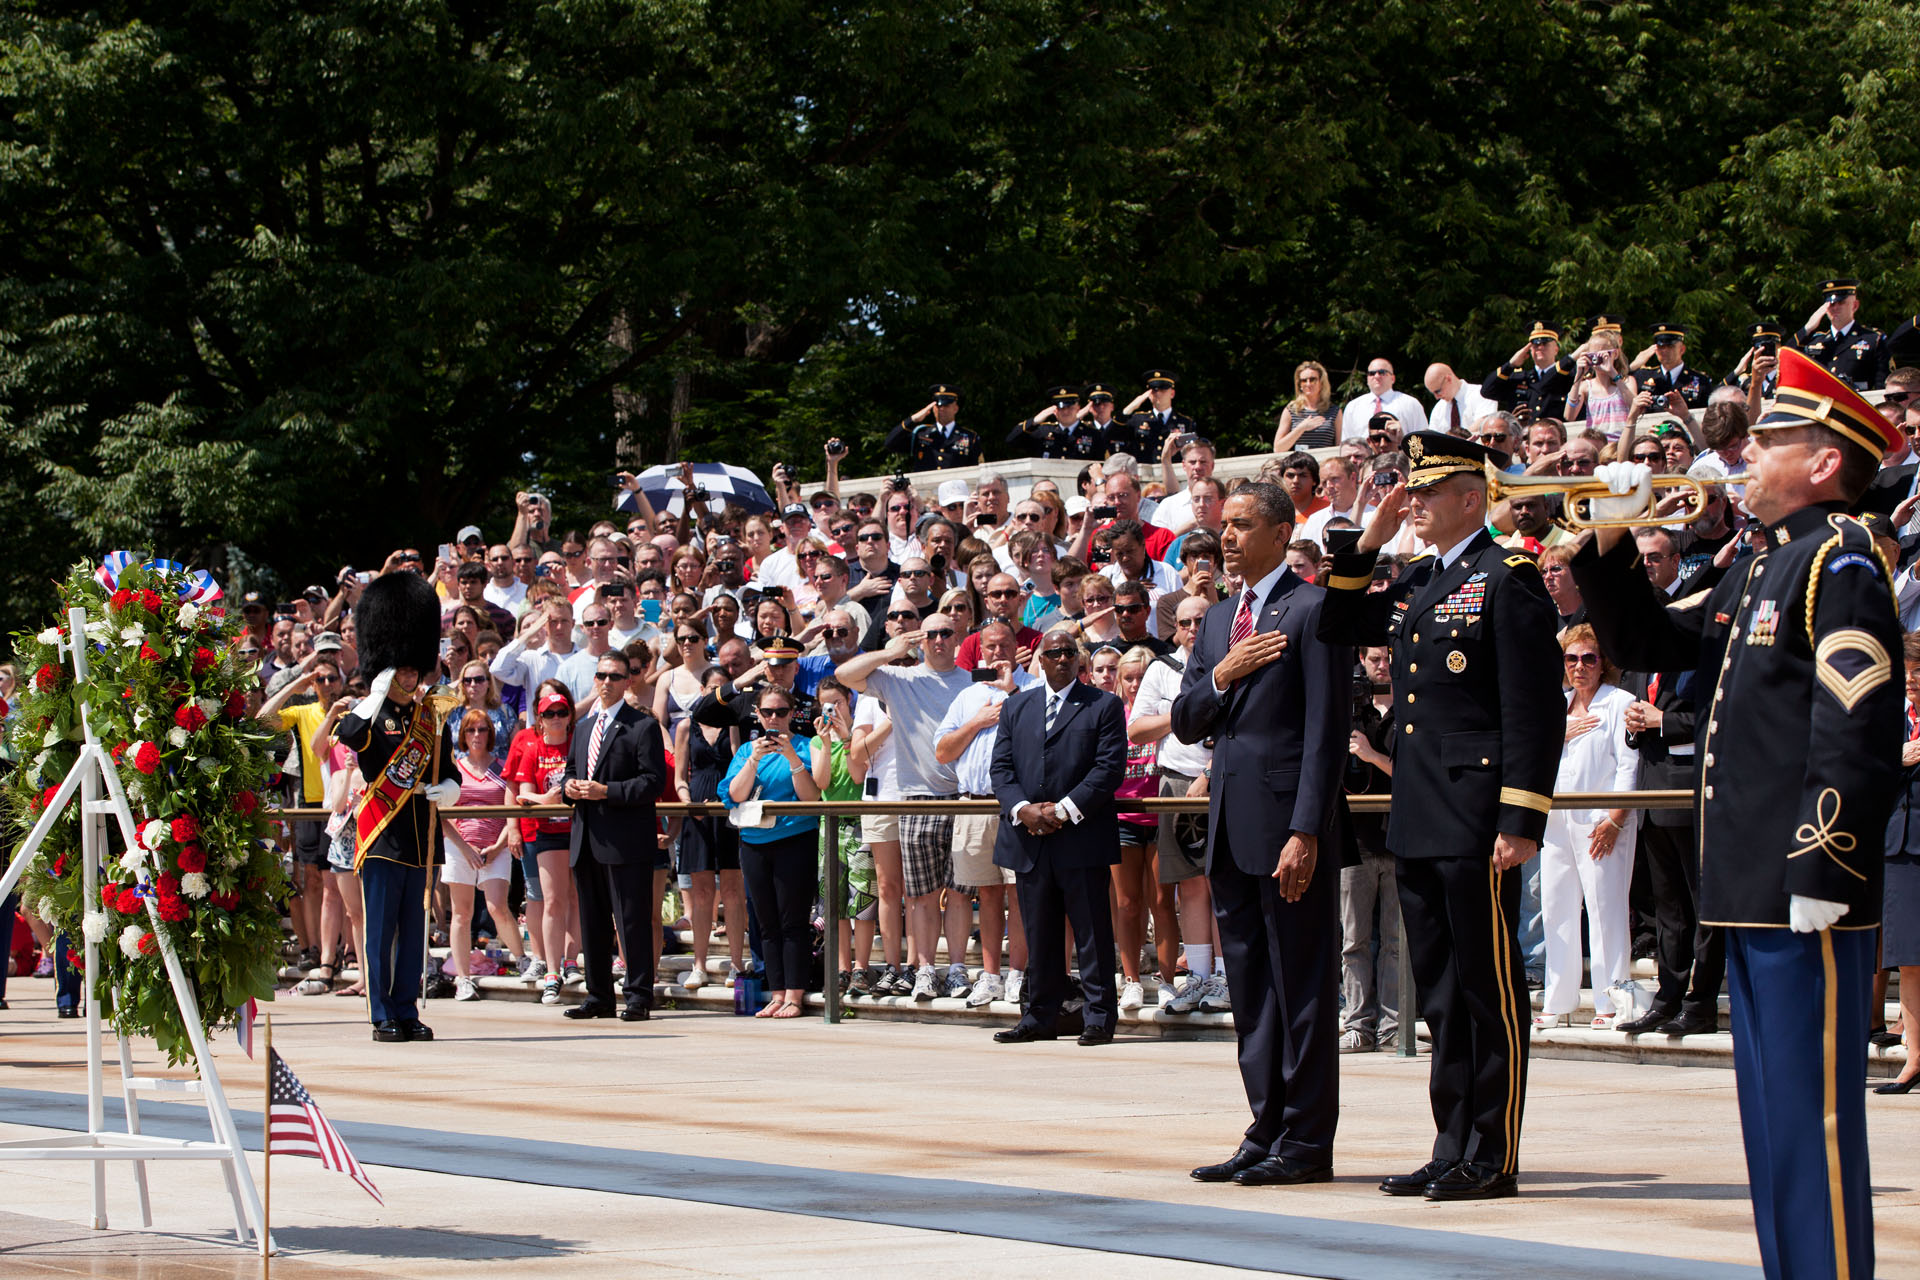 President Obama participates in a Memorial Day wreath laying at Arlington National Cemetery (May 28, 2012)